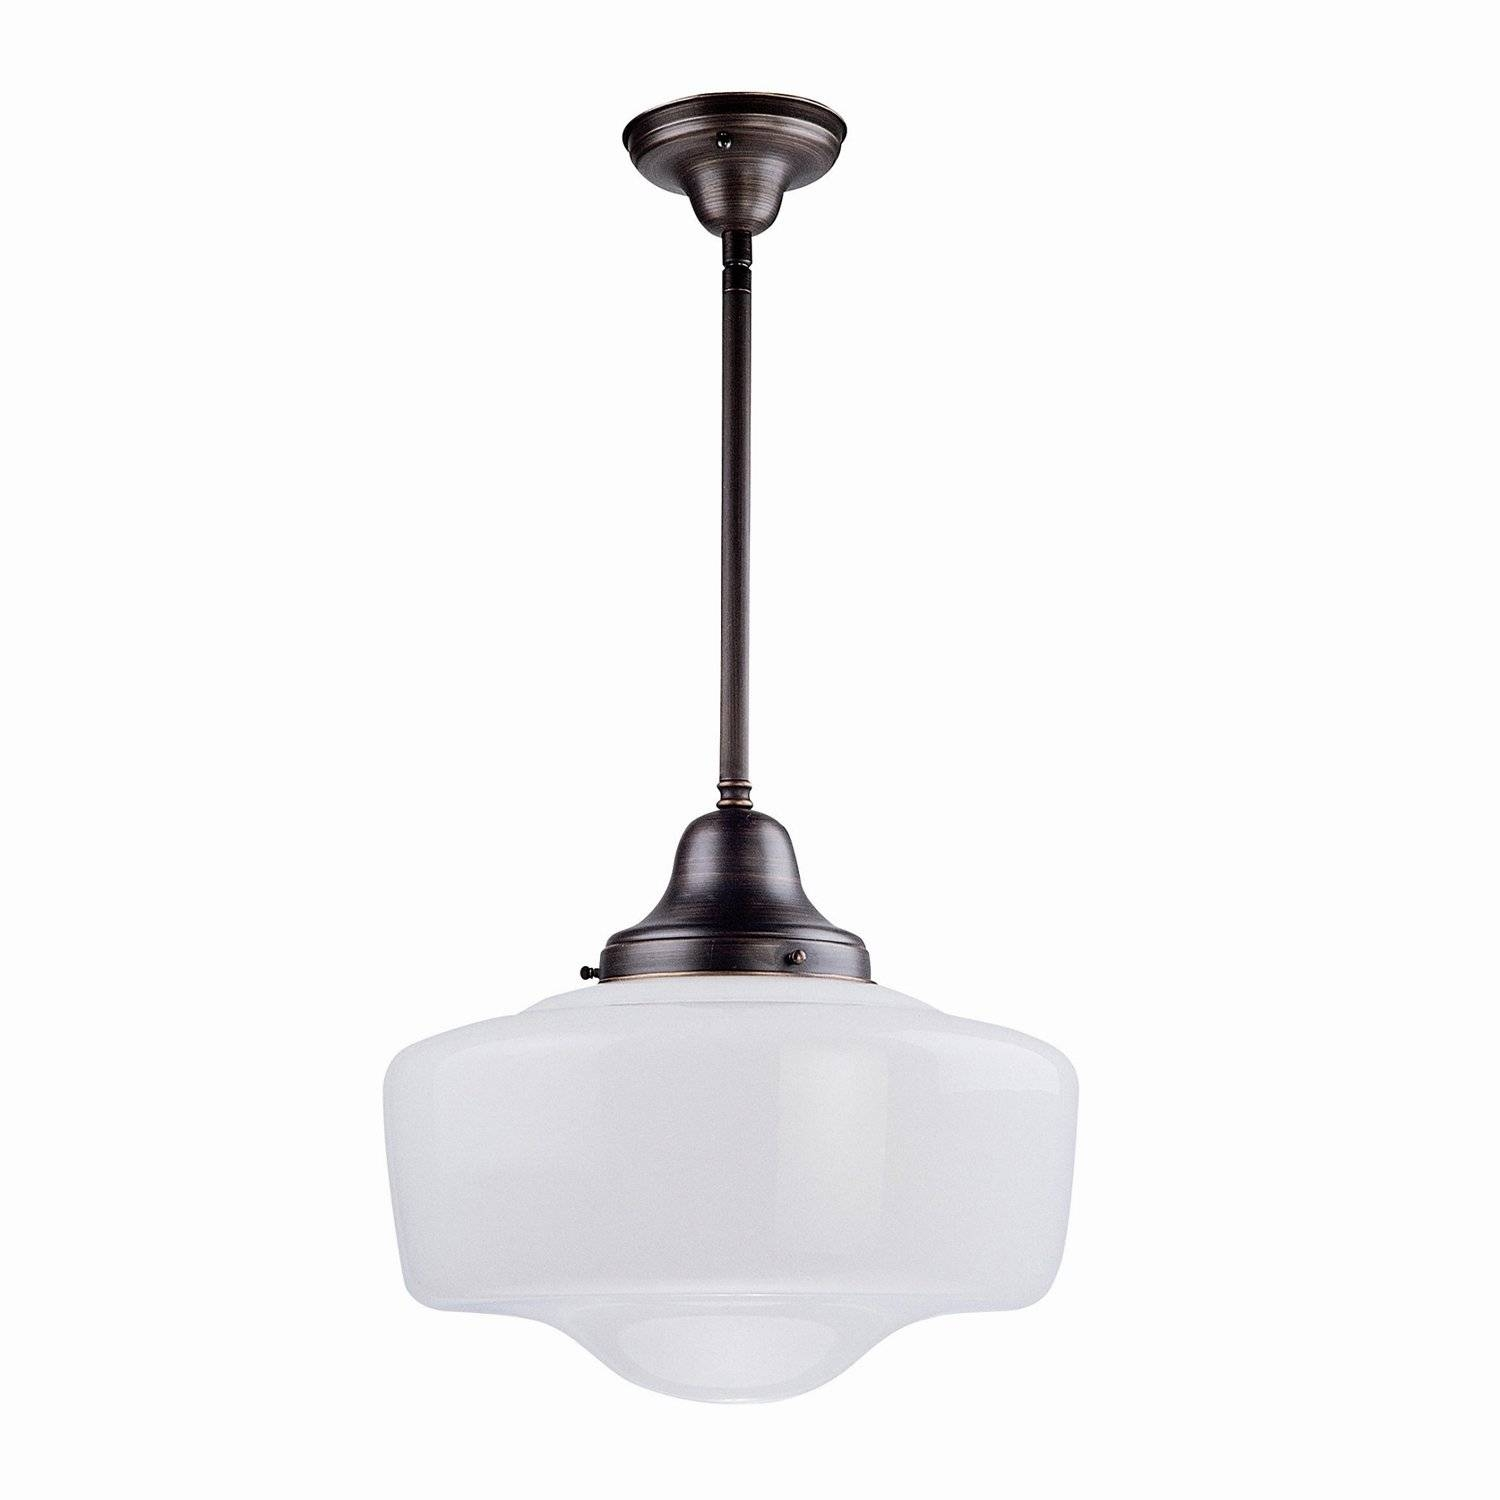 Dvi Dvp7521 Schoolhouse Pendant | Lowe's Canada for Schoolhouse Pendant Lights Fixtures (Image 2 of 15)